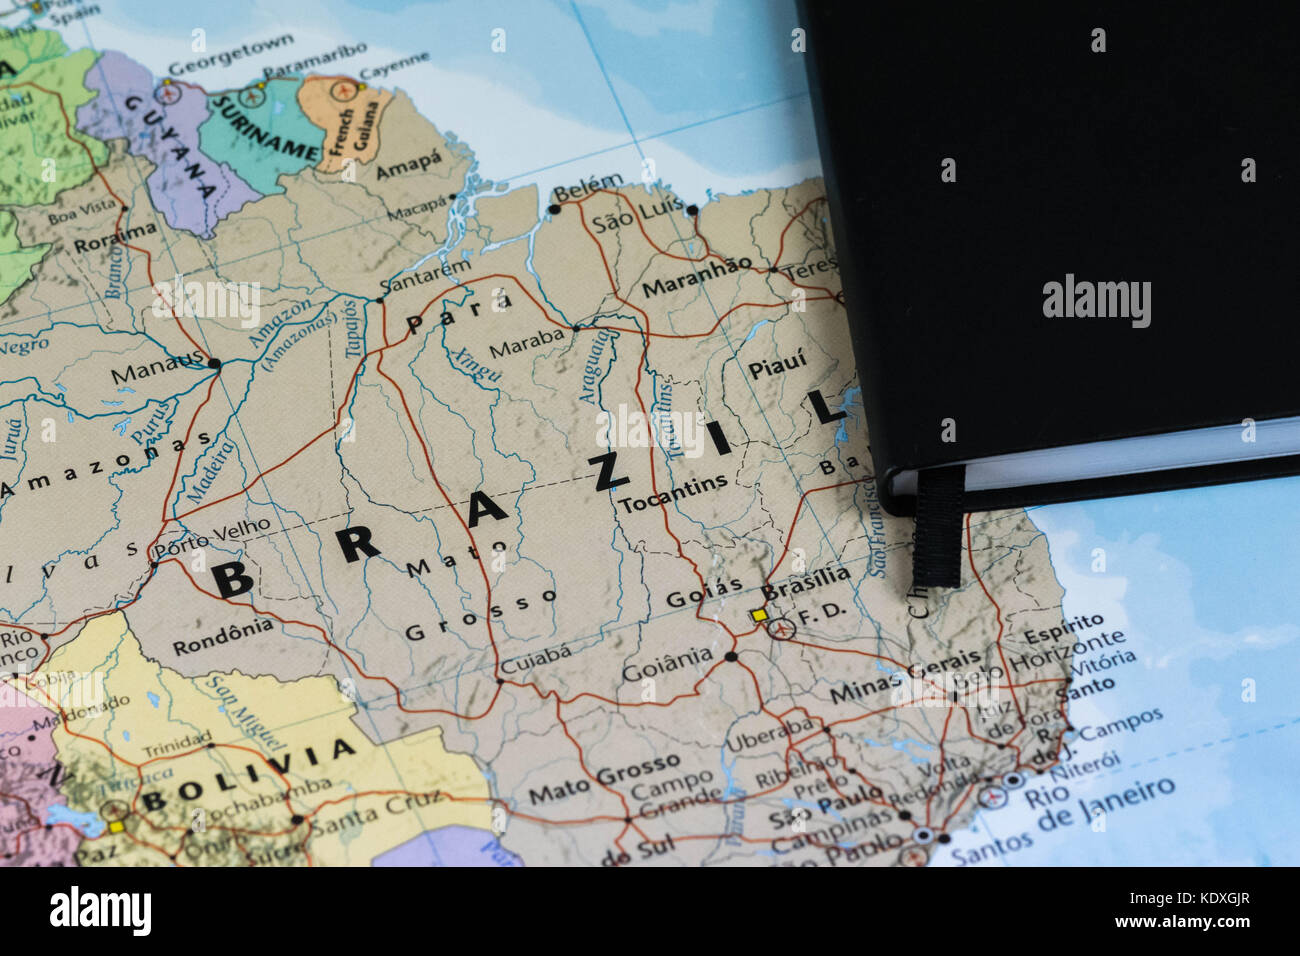 personal lanning notes of a traveller planning a trip to Brazil over a closeup map of Brazil - Stock Image